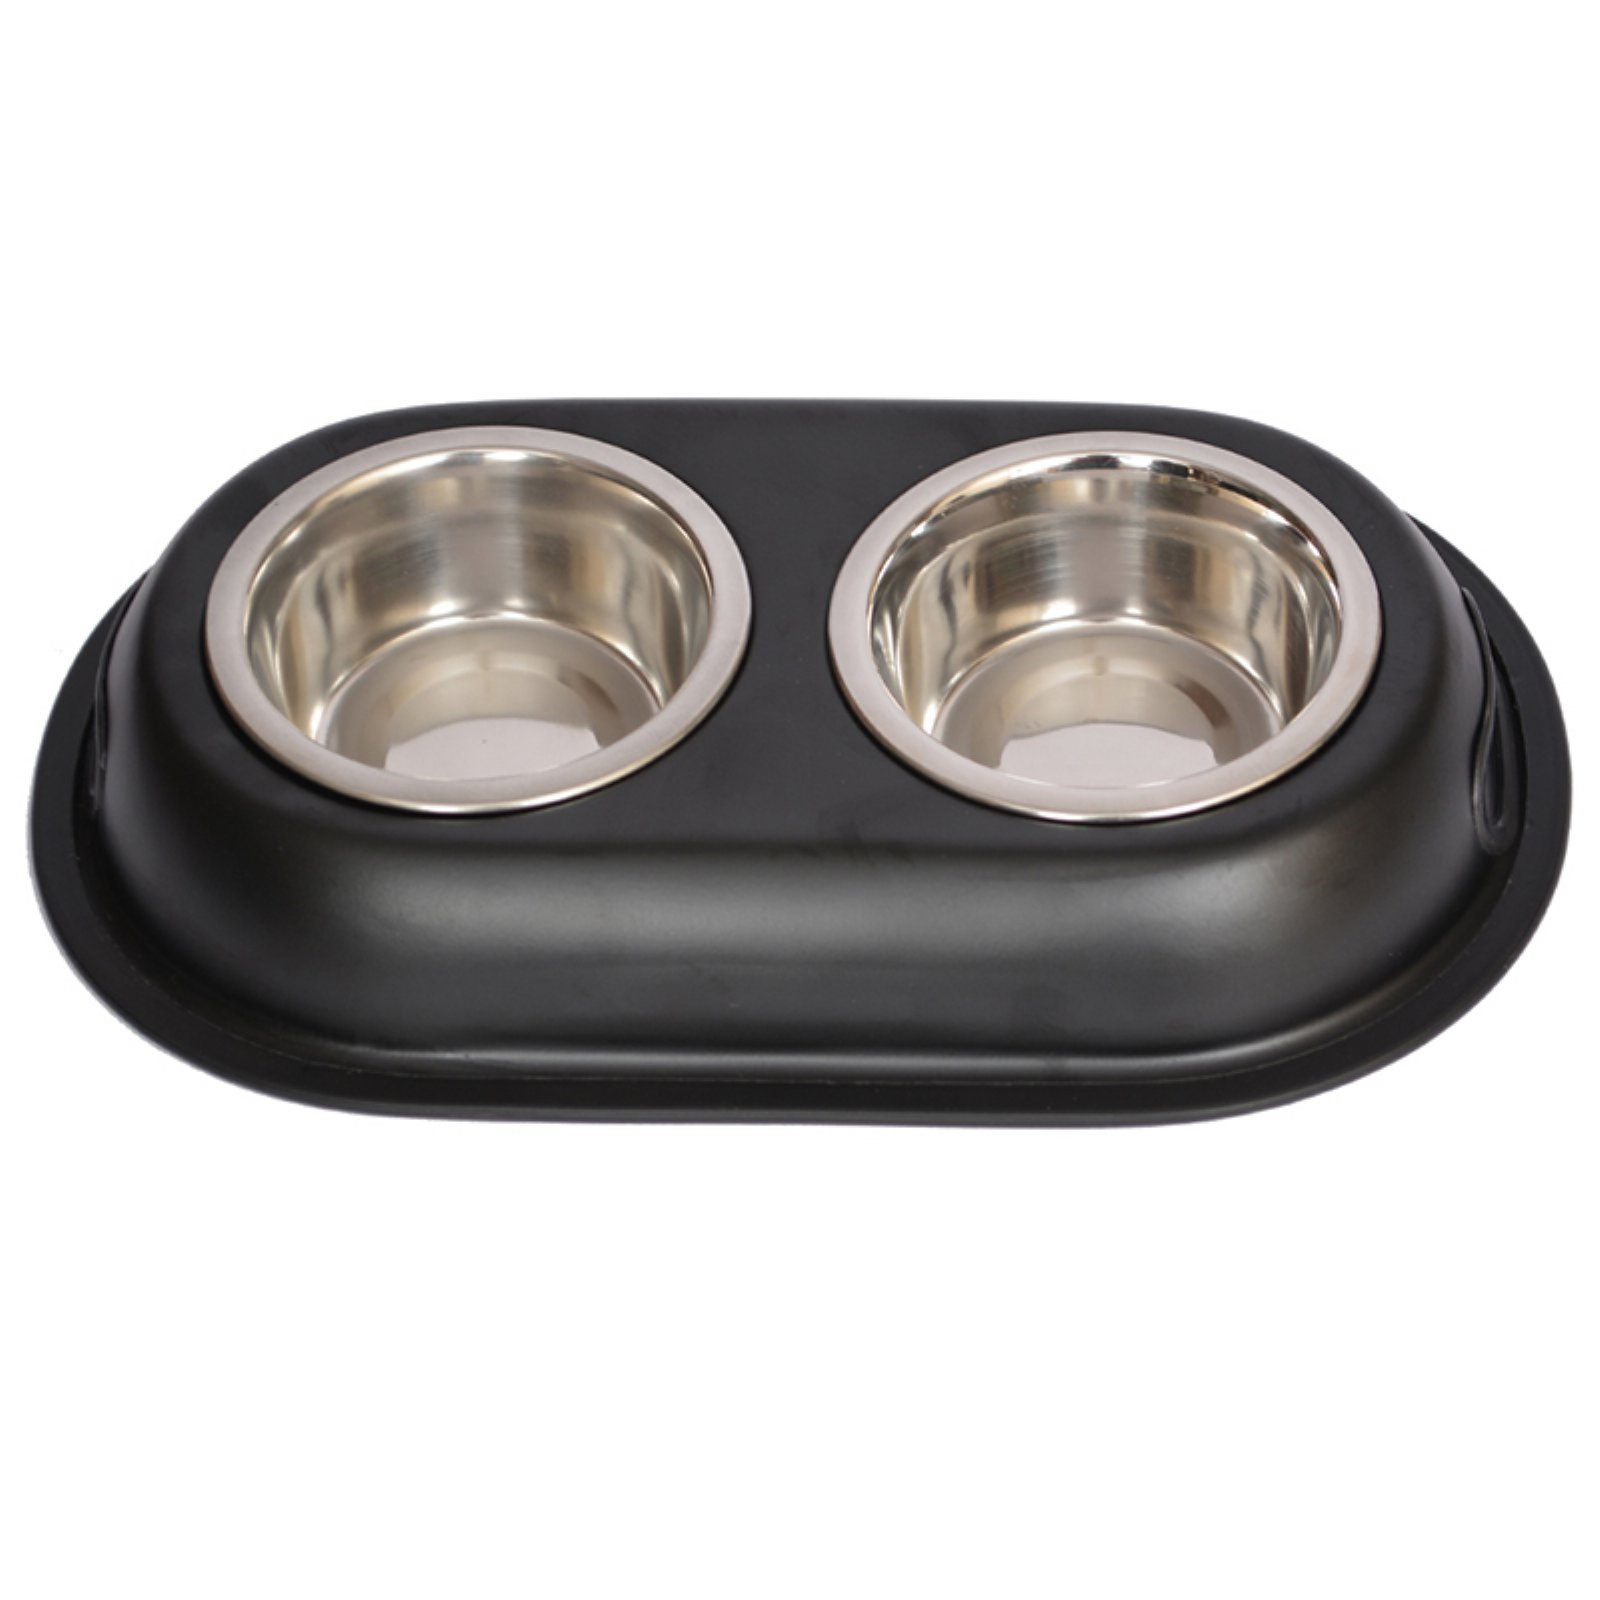 Iconic Pet Color Splash Stainless Steel Double Diner (Black) For Dog/Cat, 1 Pt, 16 Oz, 2 Cup